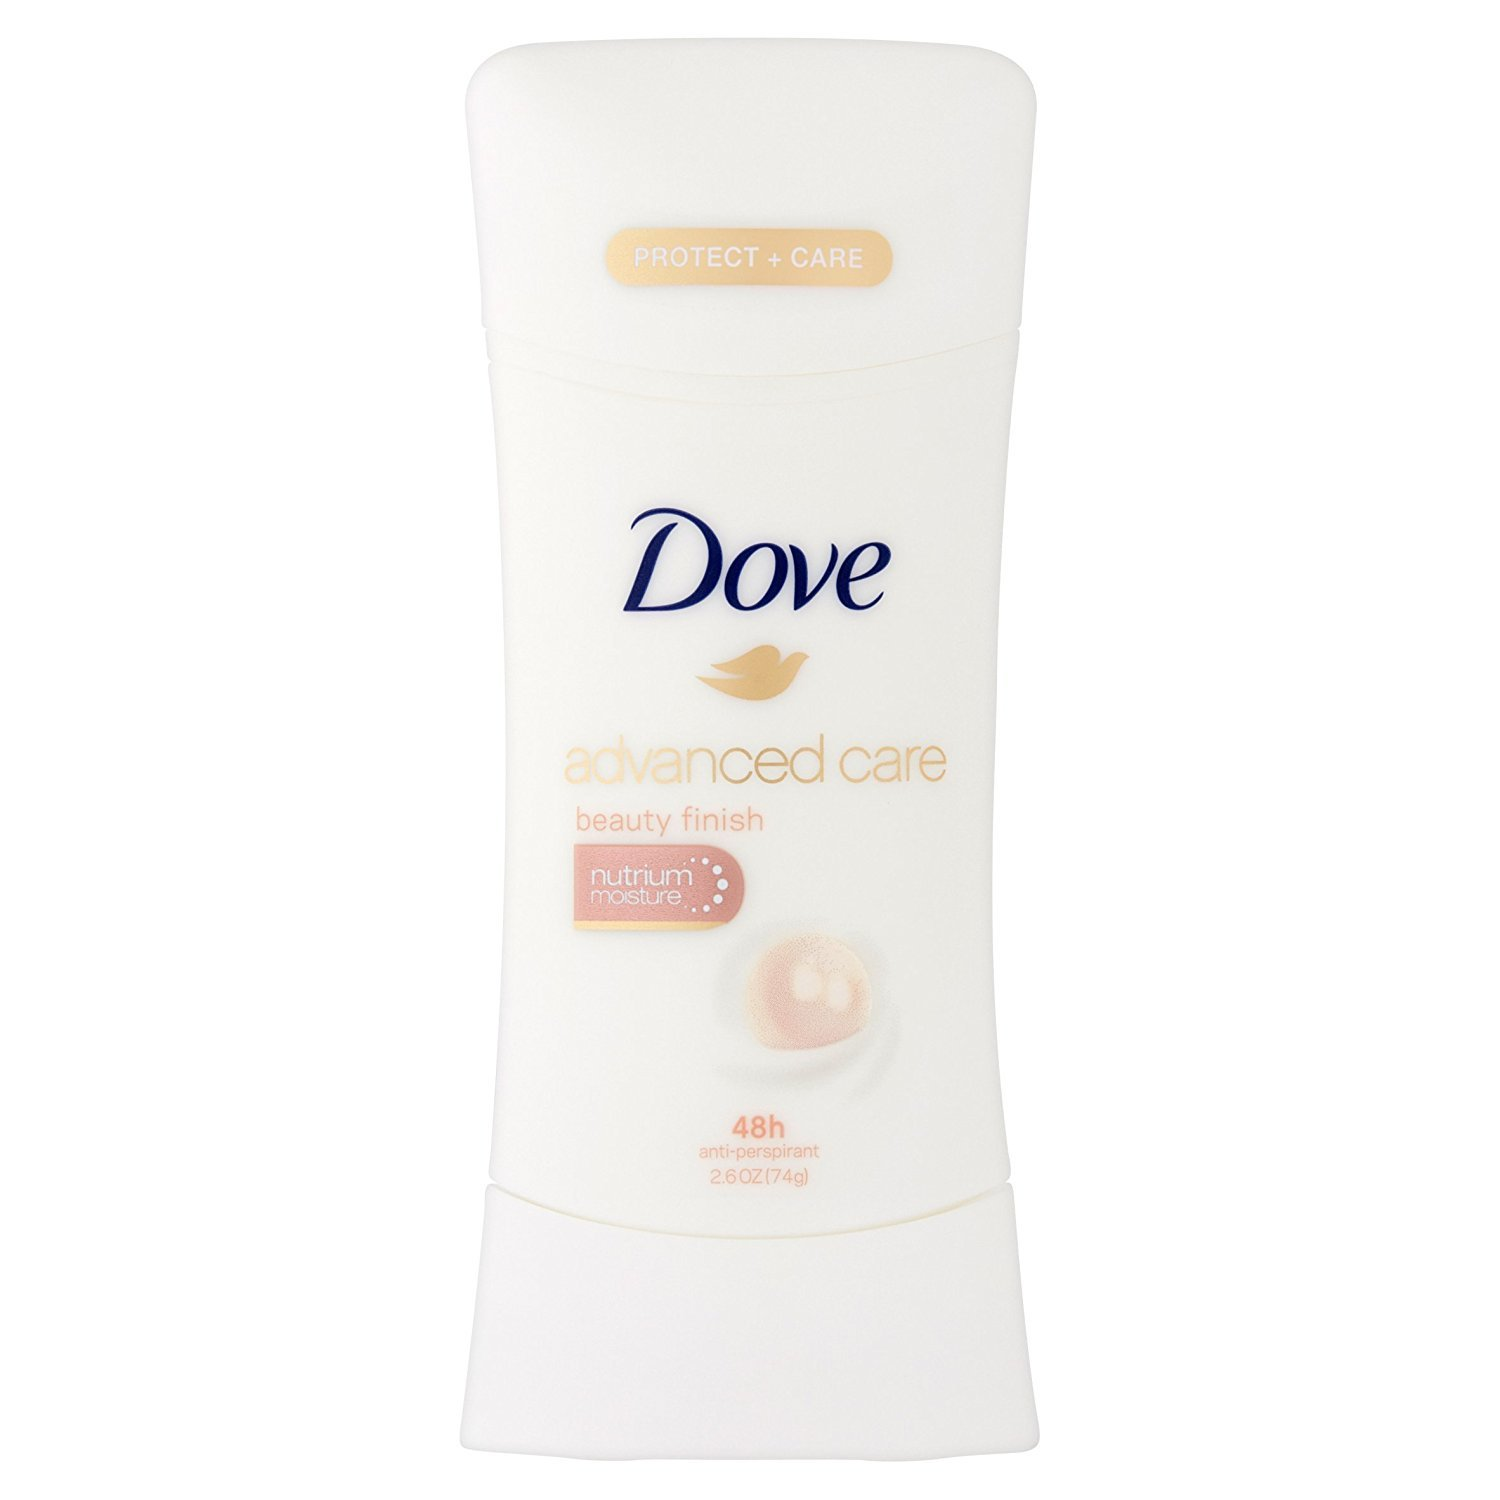 Dove Advanced Care Anti-Perspirant Deodorant, Beauty Finish 2.6 ounces (Pack of 4) by Dove